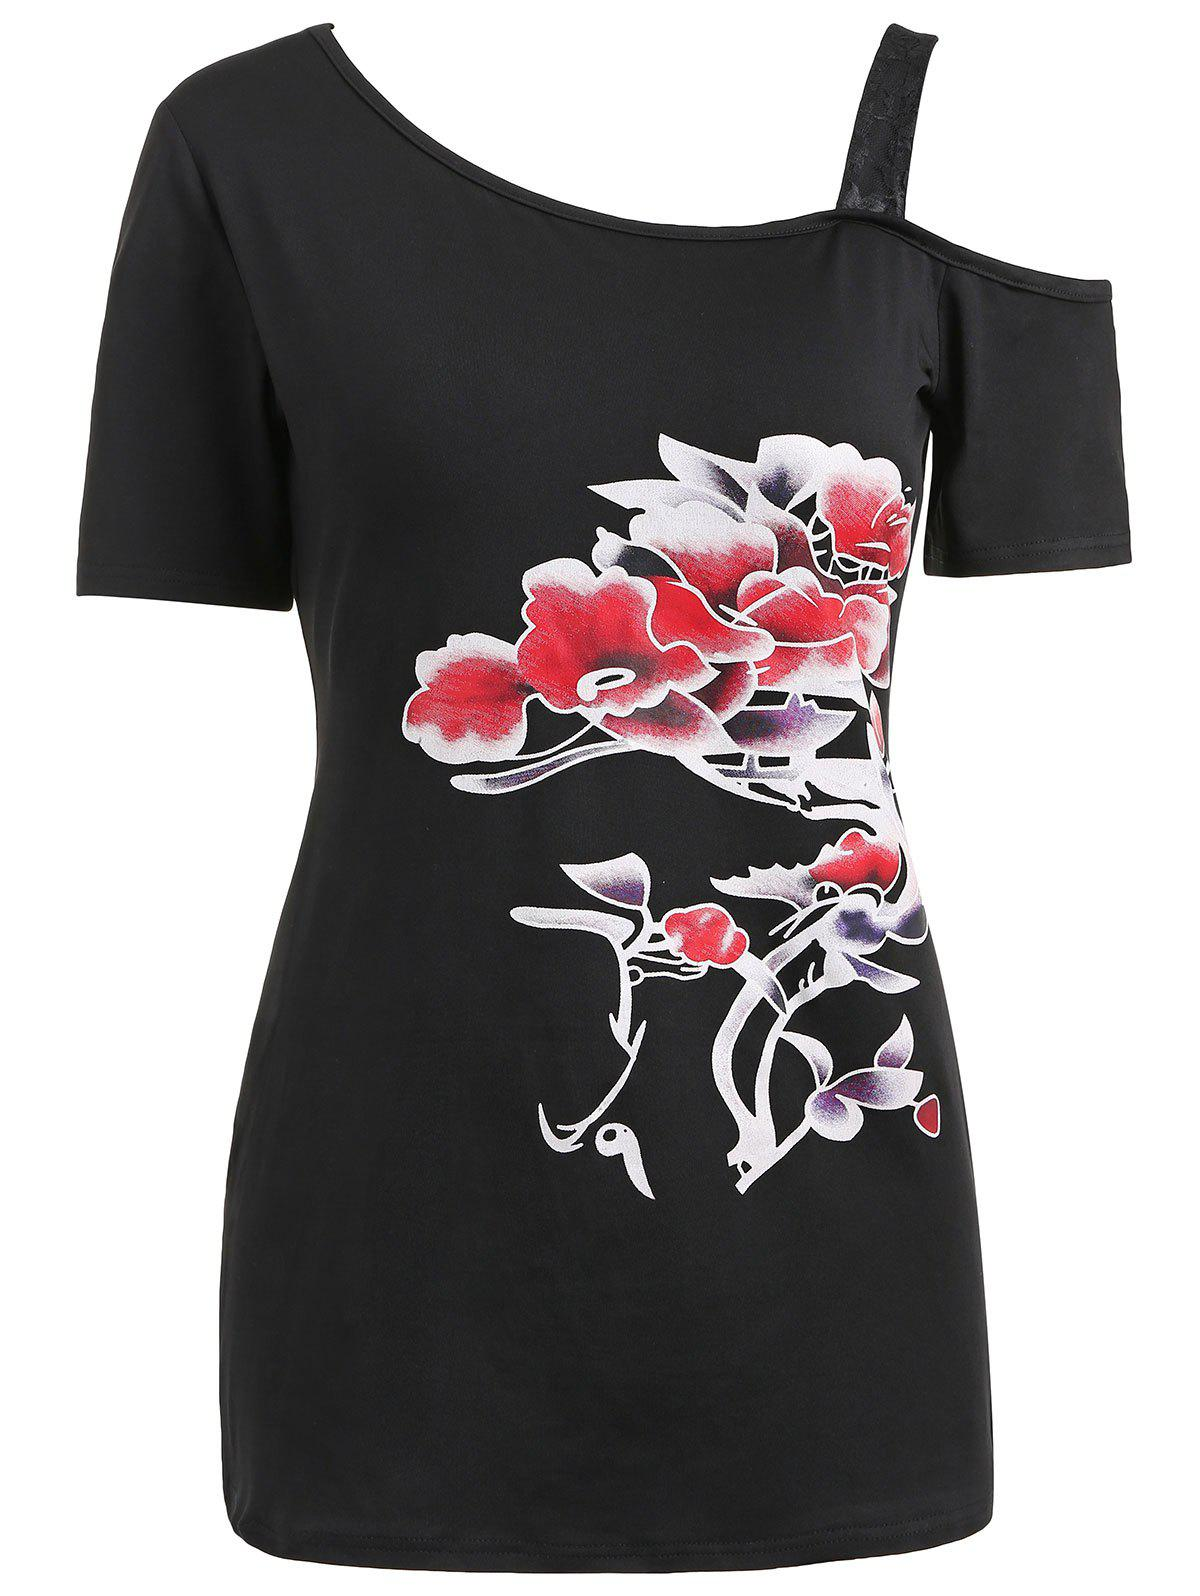 Chic Skew Neck Lace Strap Printed T-shirt